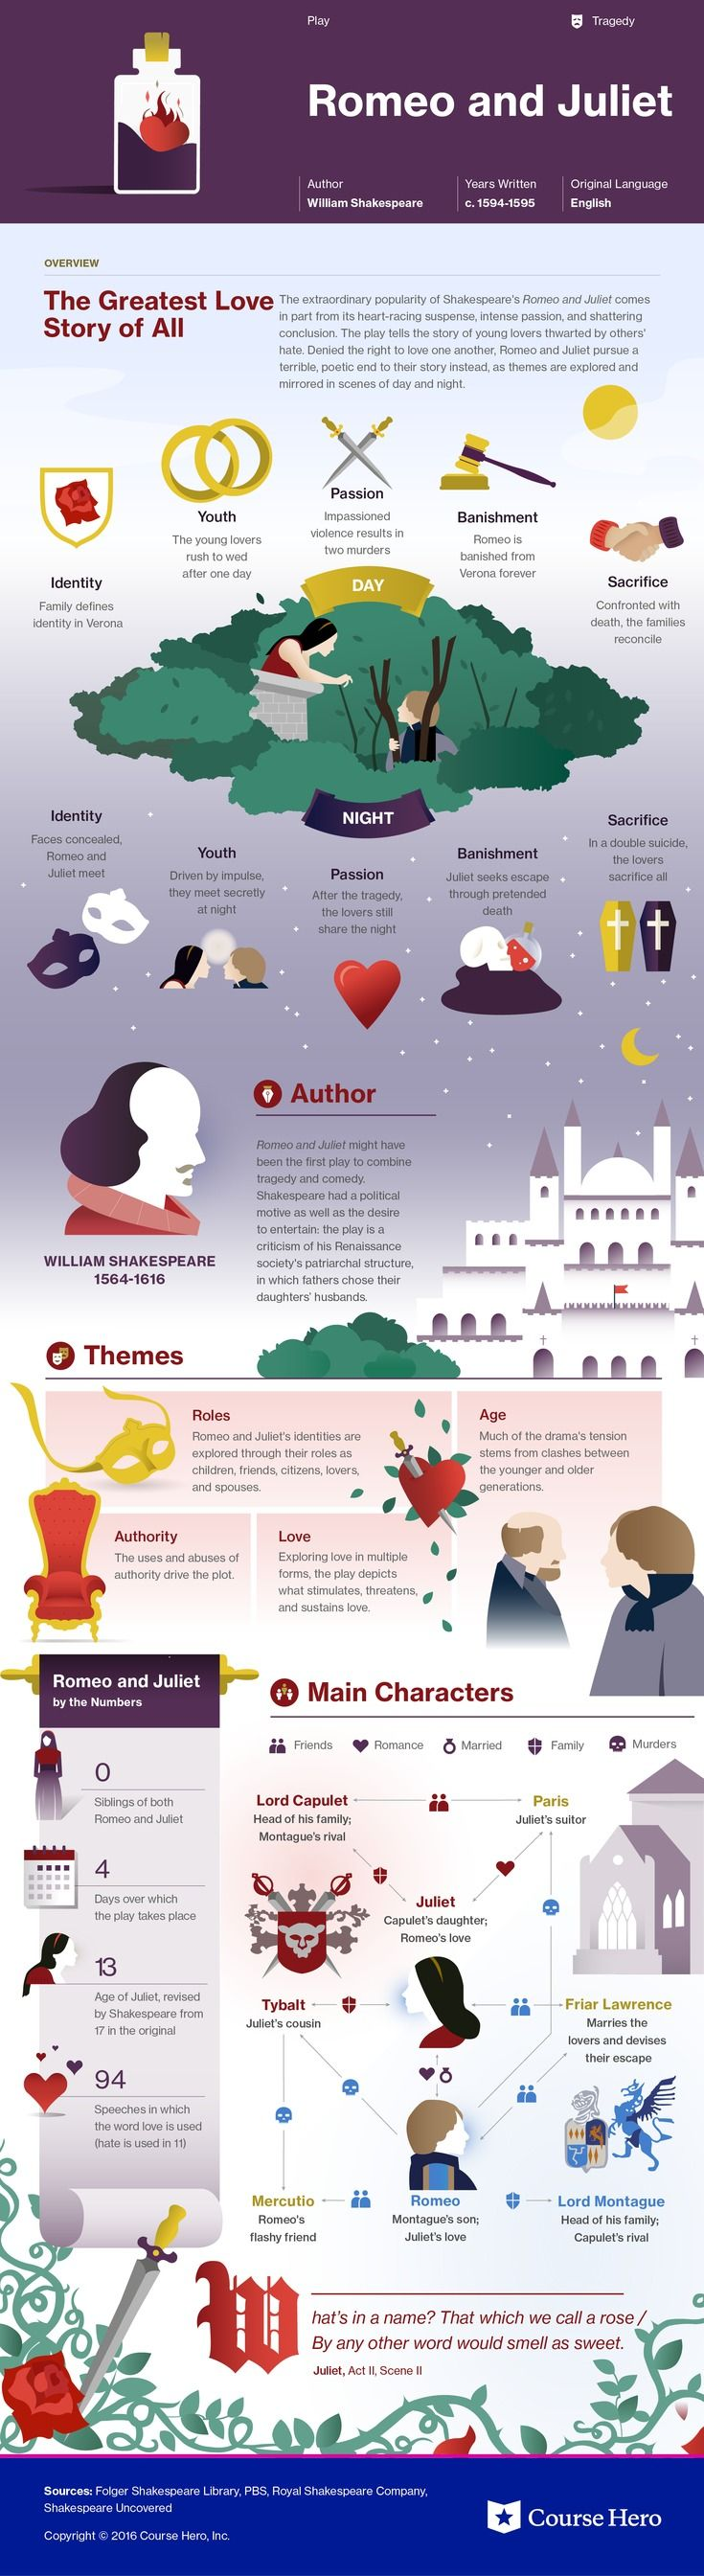 This @CourseHero infographic on Romeo and Juliet is both visually stunning and informative!